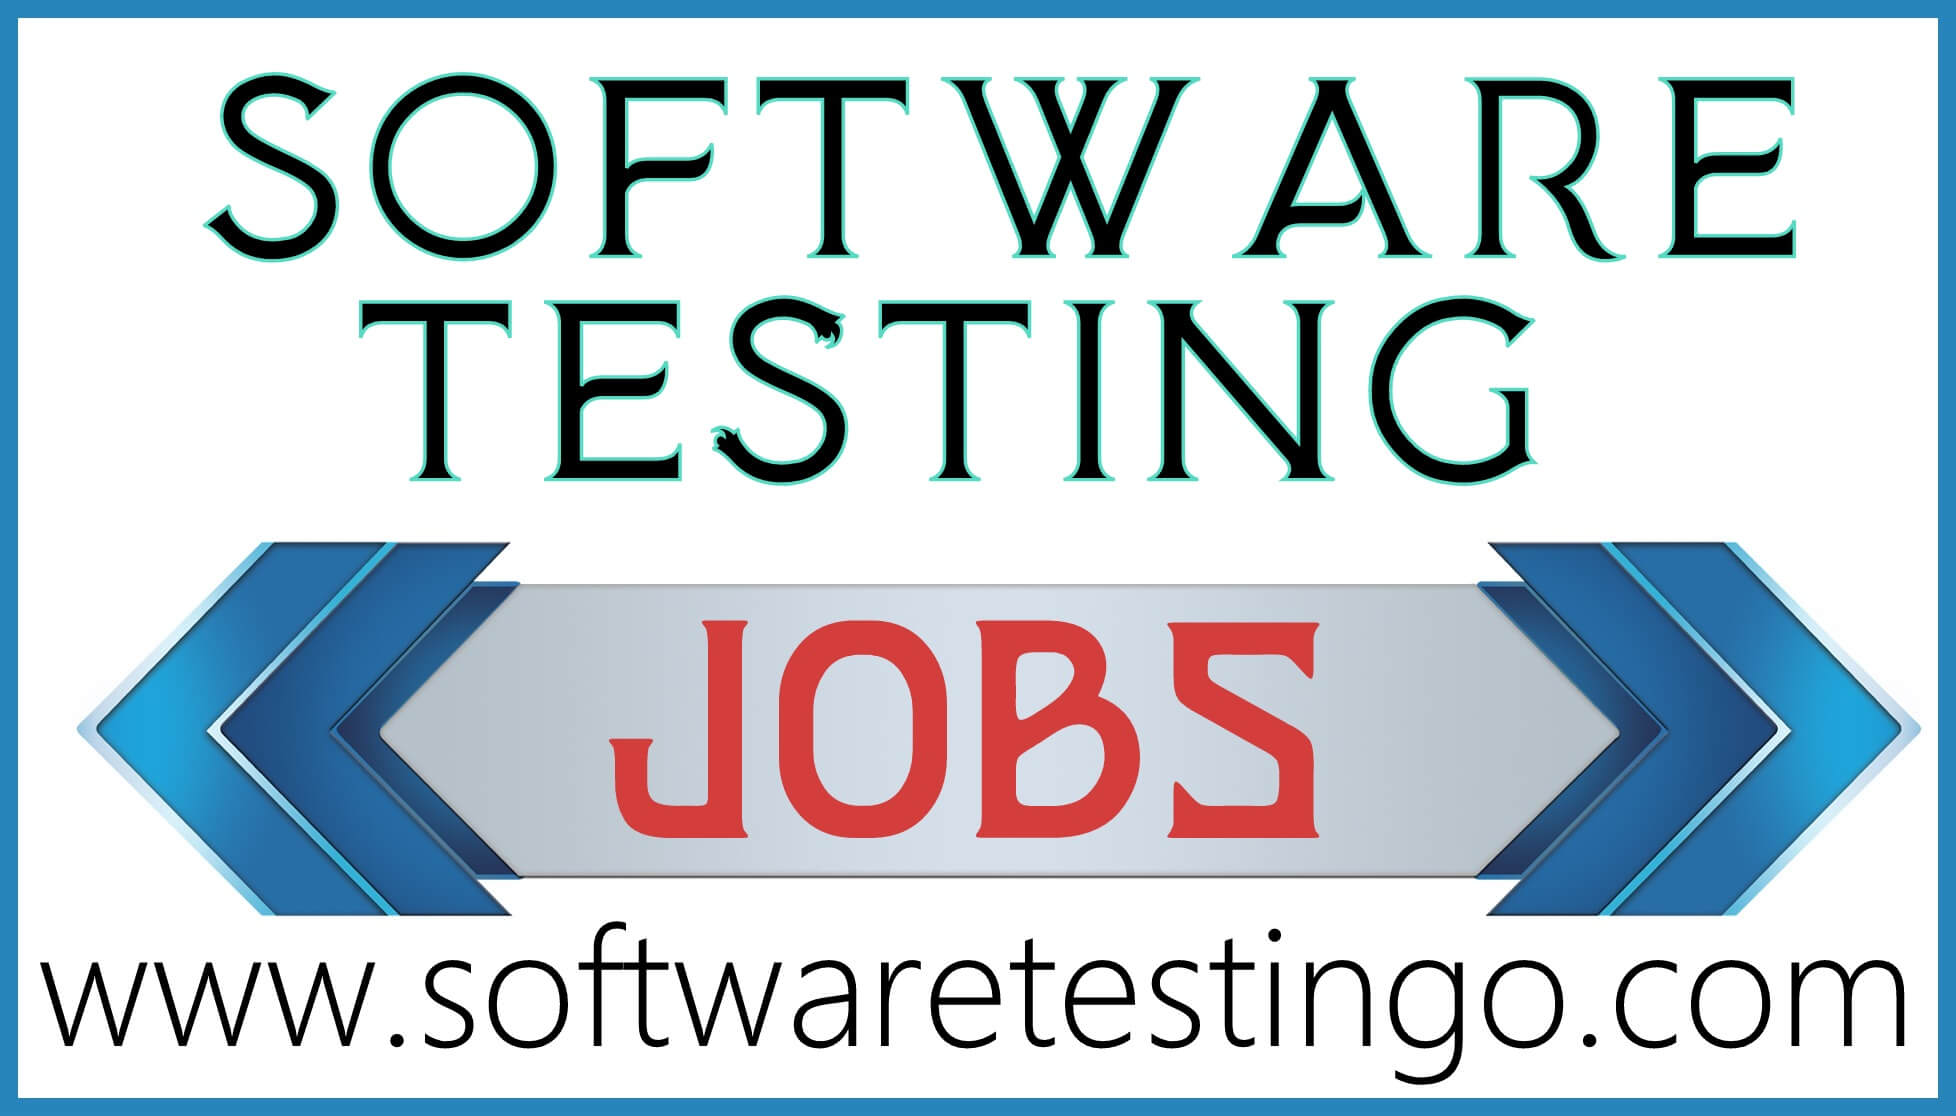 manual software testing jobs in pune for freshers